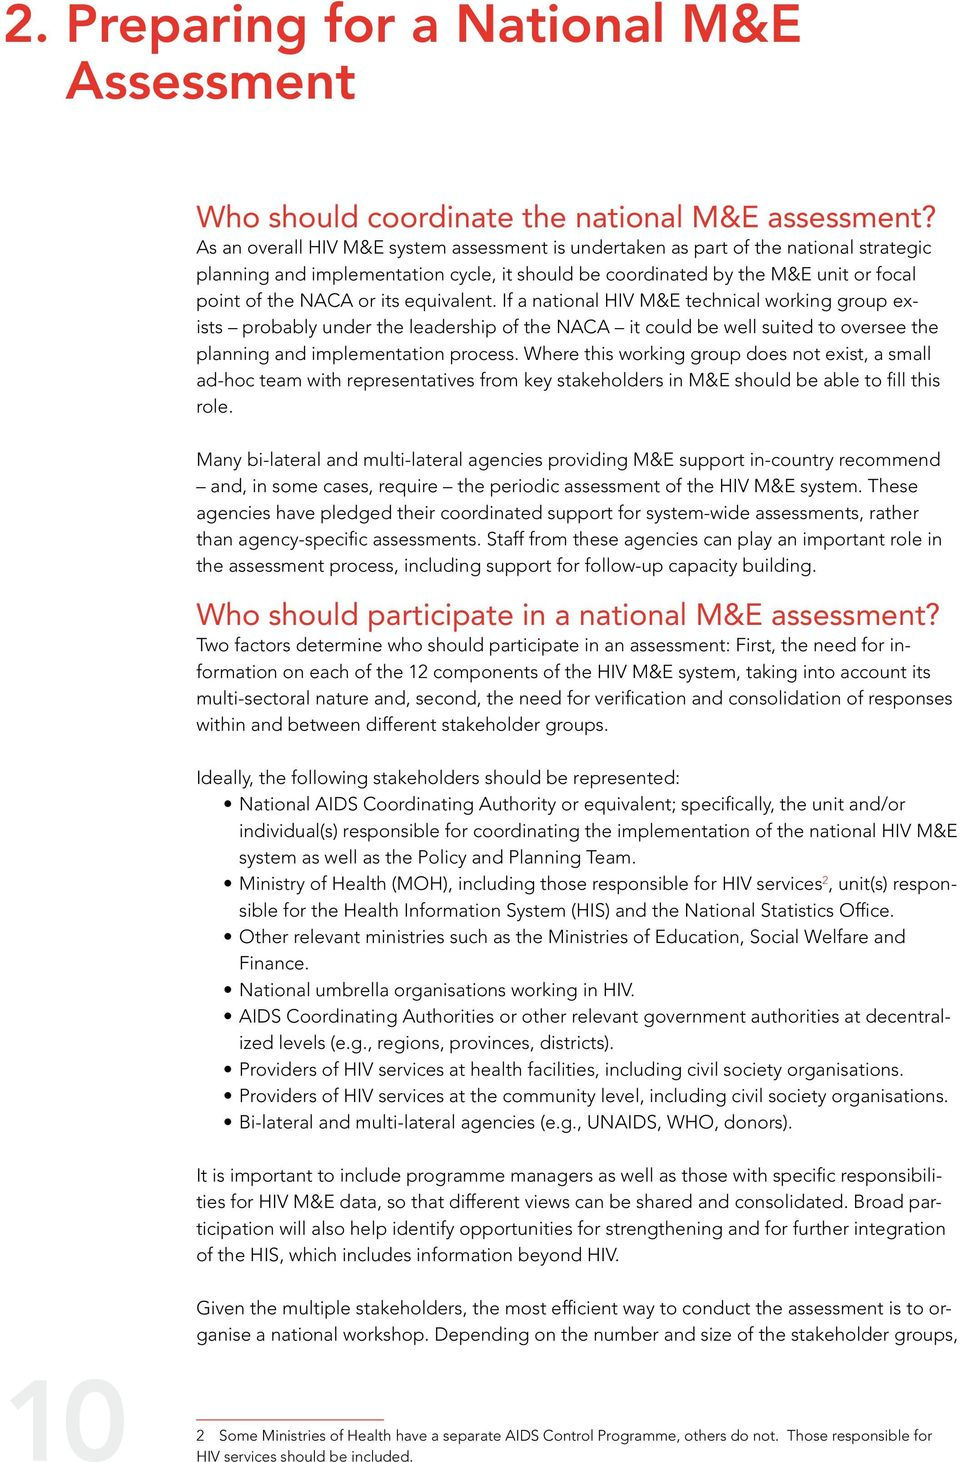 equivalent. If a national HIV M&E technical working group exists probably under the leadership of the NACA it could be well suited to oversee the planning and implementation process.